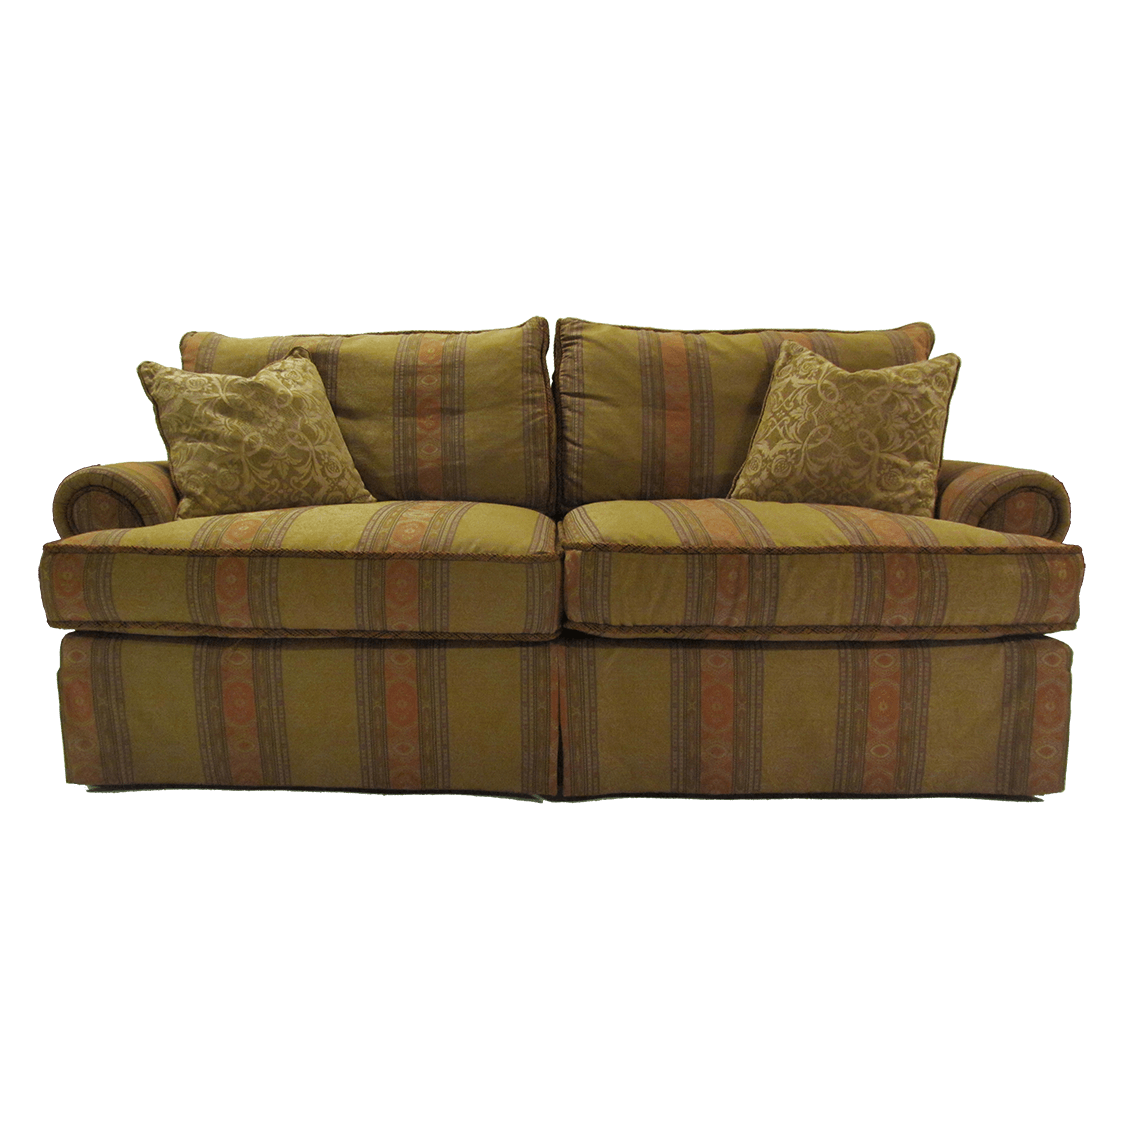 Huntington_Furniture_Co_Skirted_Sofa